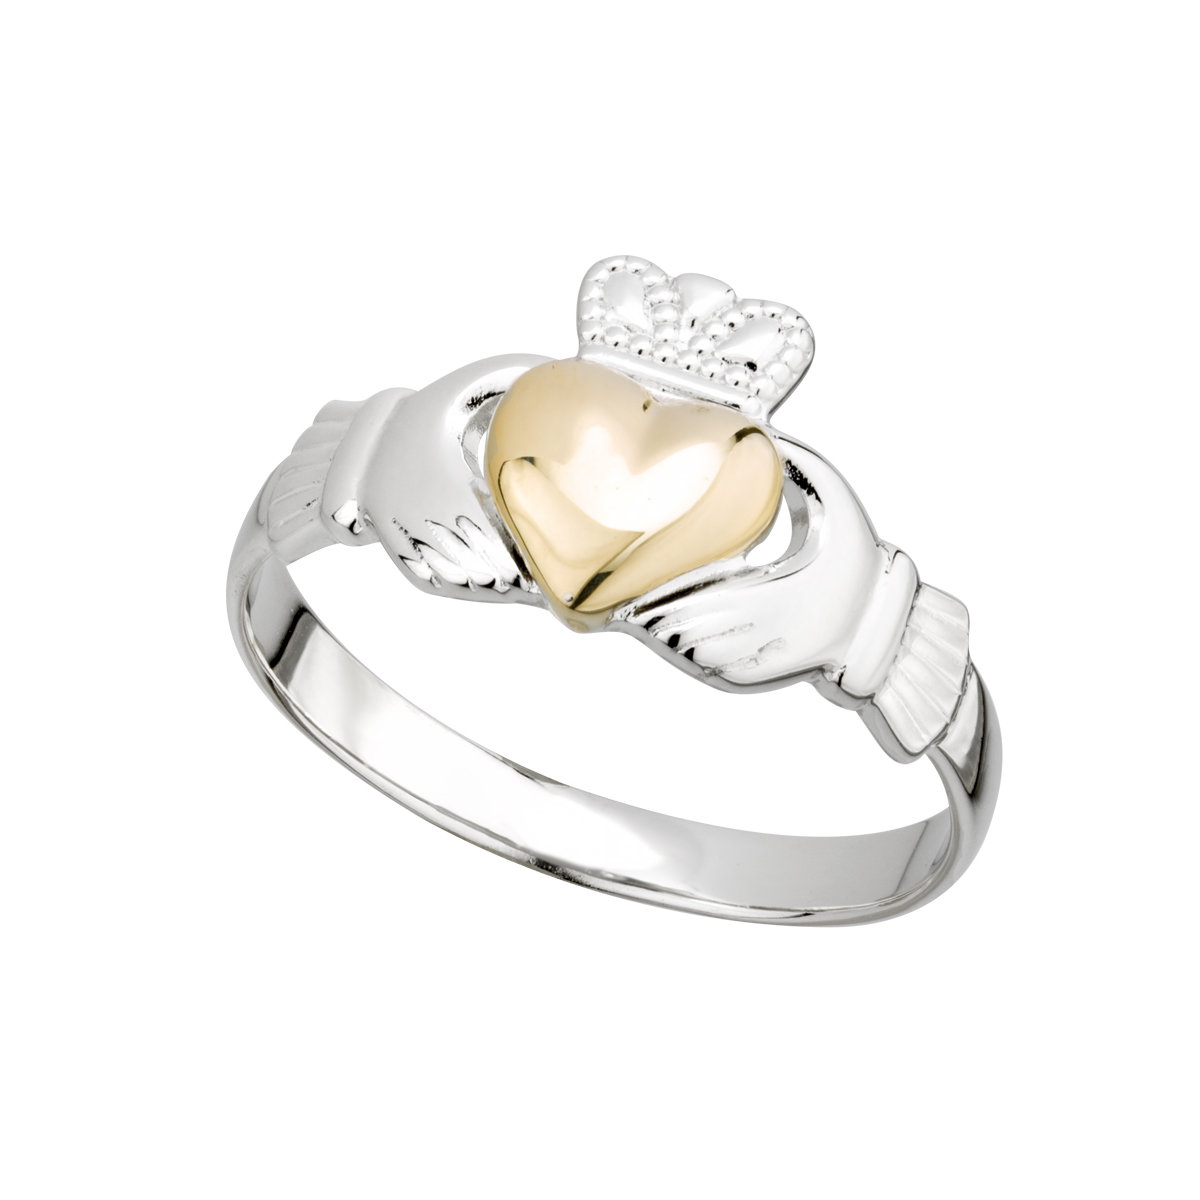 ladies sterling silver gold heart claddagh ring s21046 from Solvar